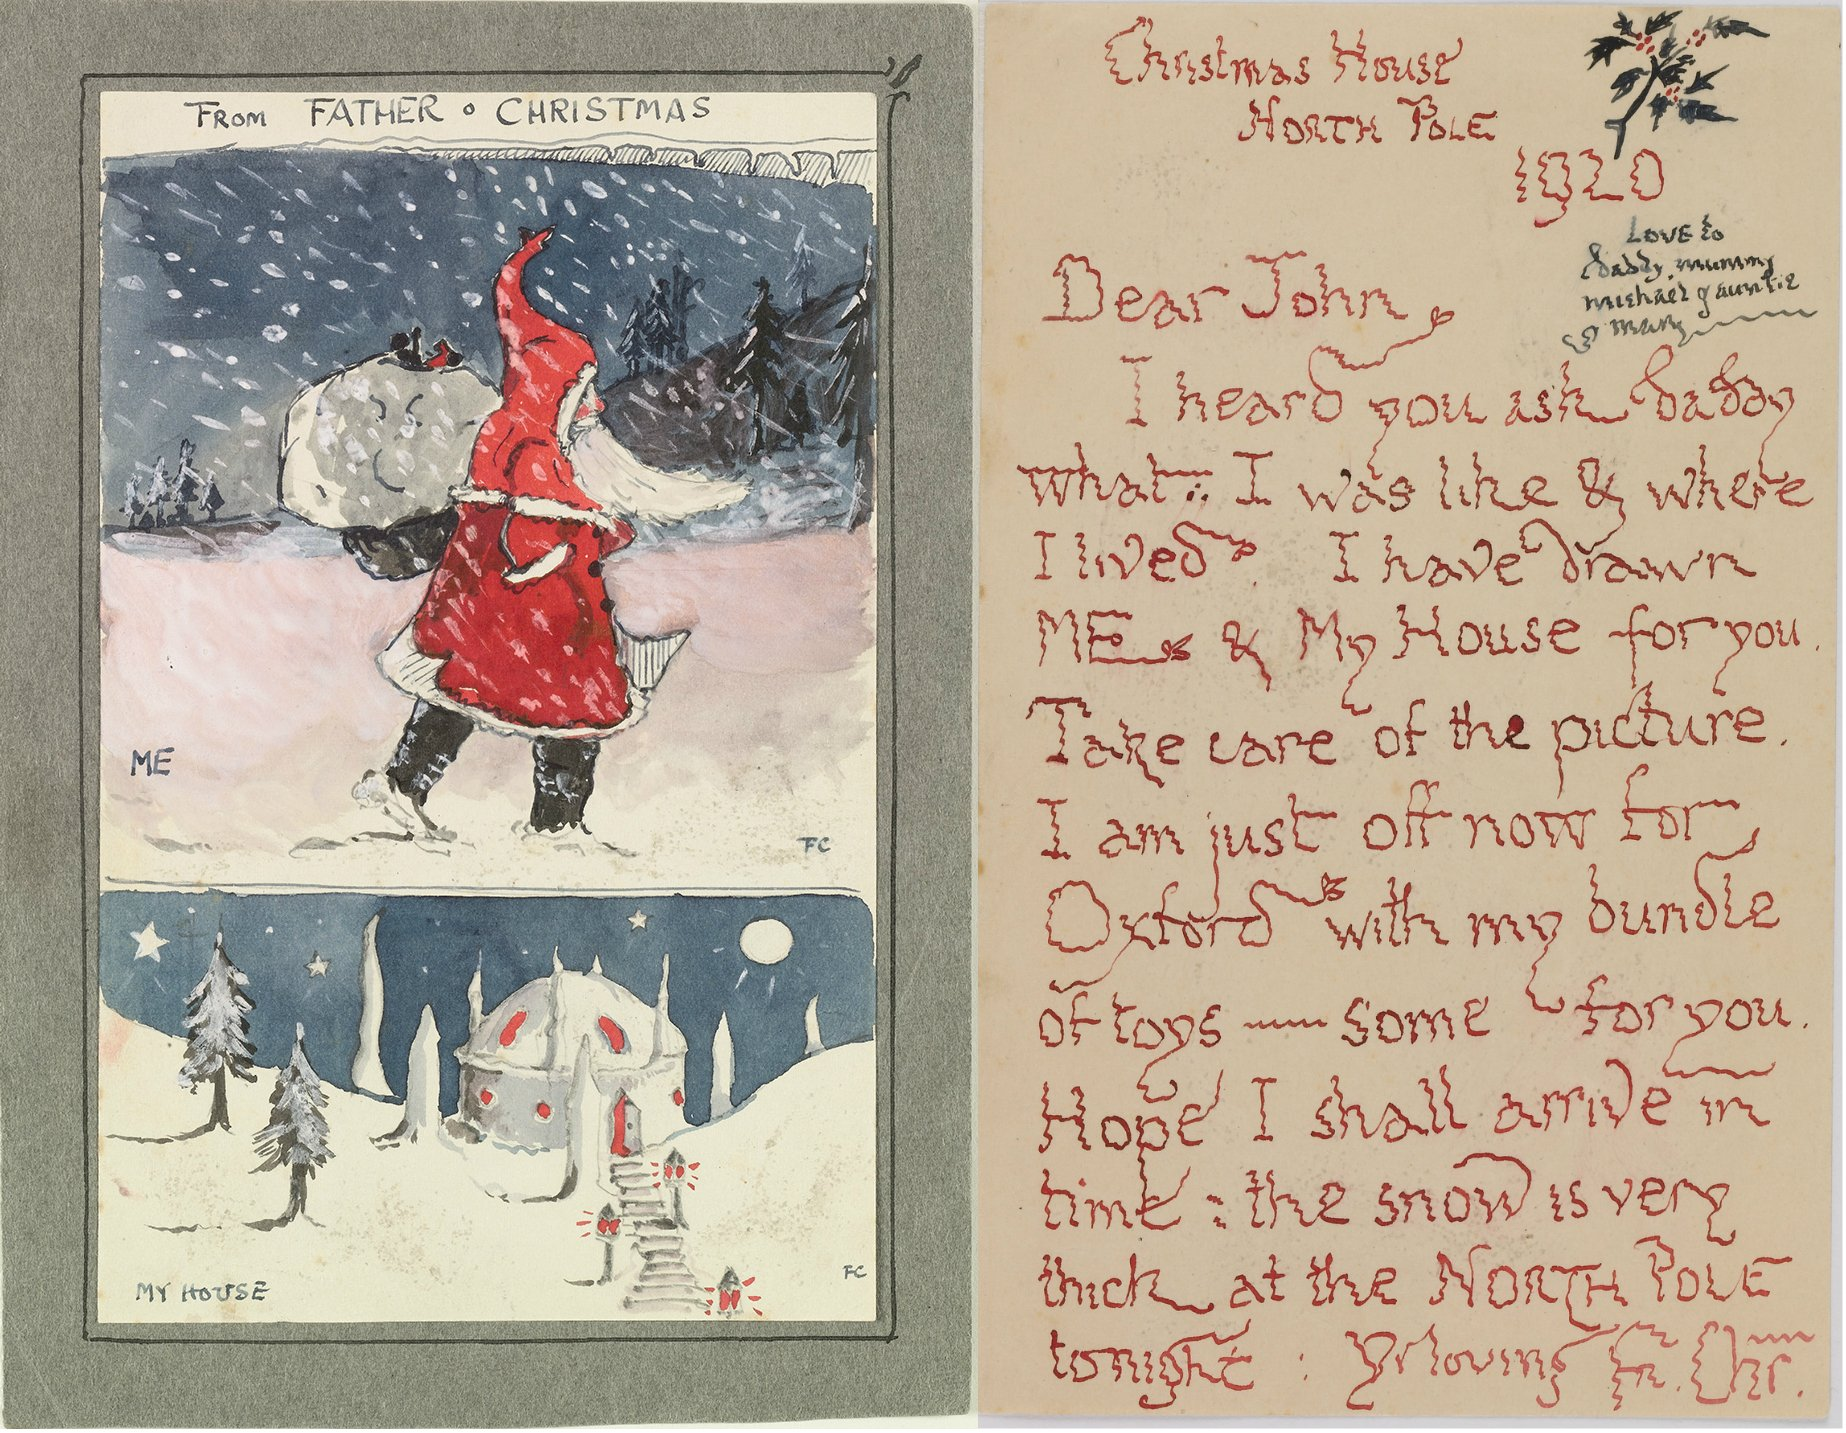 Tolkien's first letter and illustration from Father Christmas, 1920. (Copyright The Tolkien Estate Ltd, 1976.)